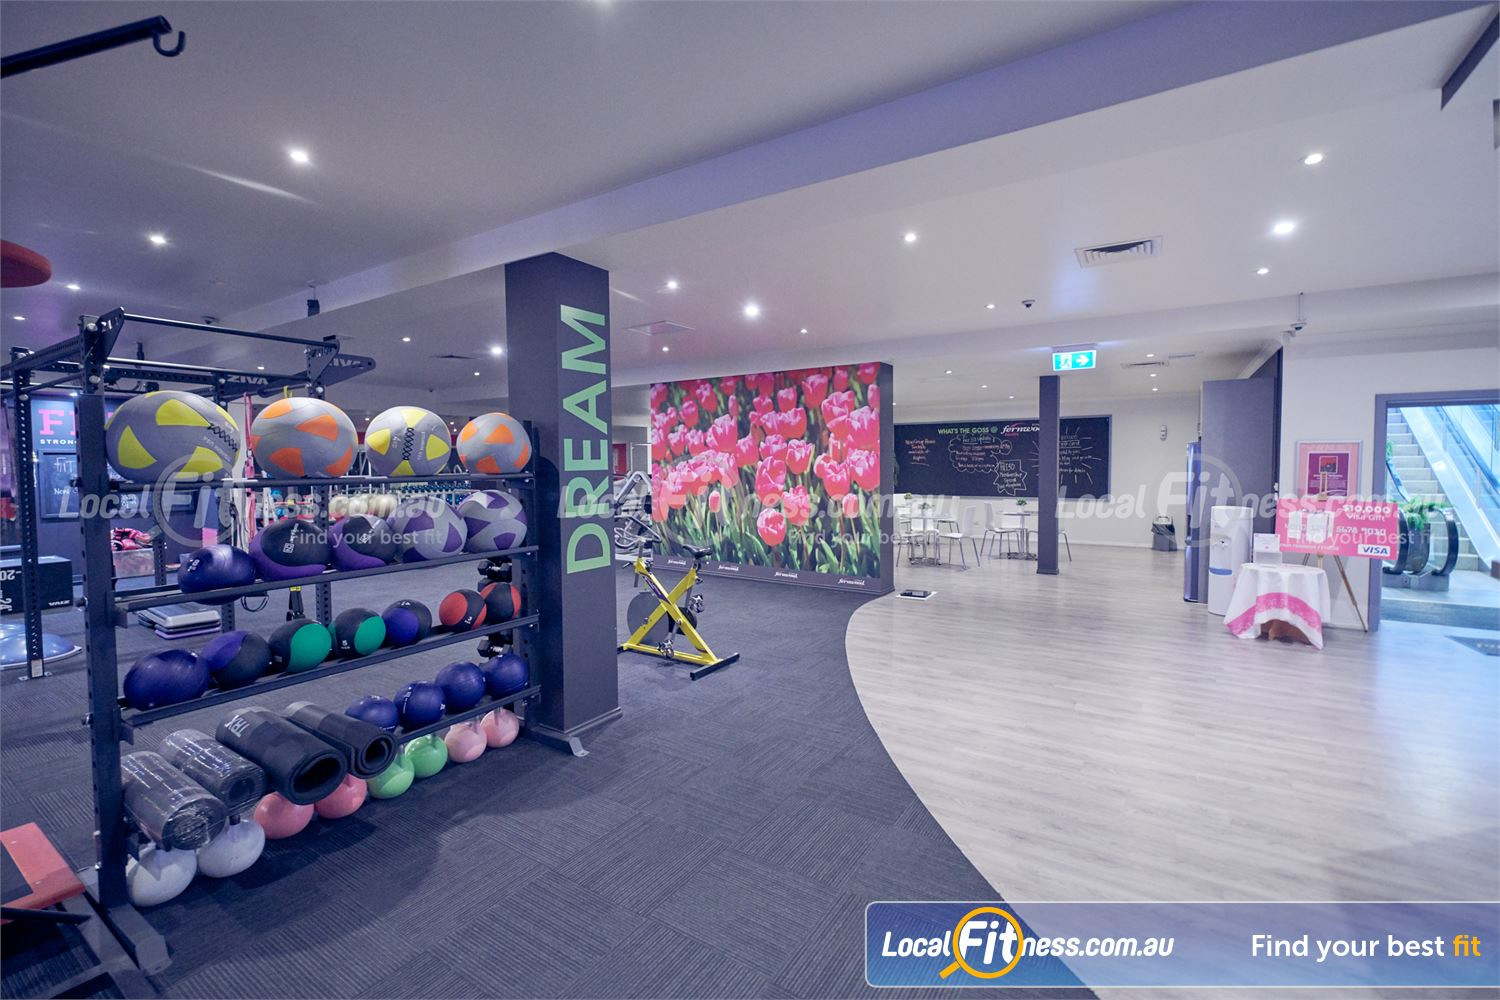 Fernwood Fitness Near Templestowe Lower Our functional training area includes kettlebells, wall balls, TRX and more.